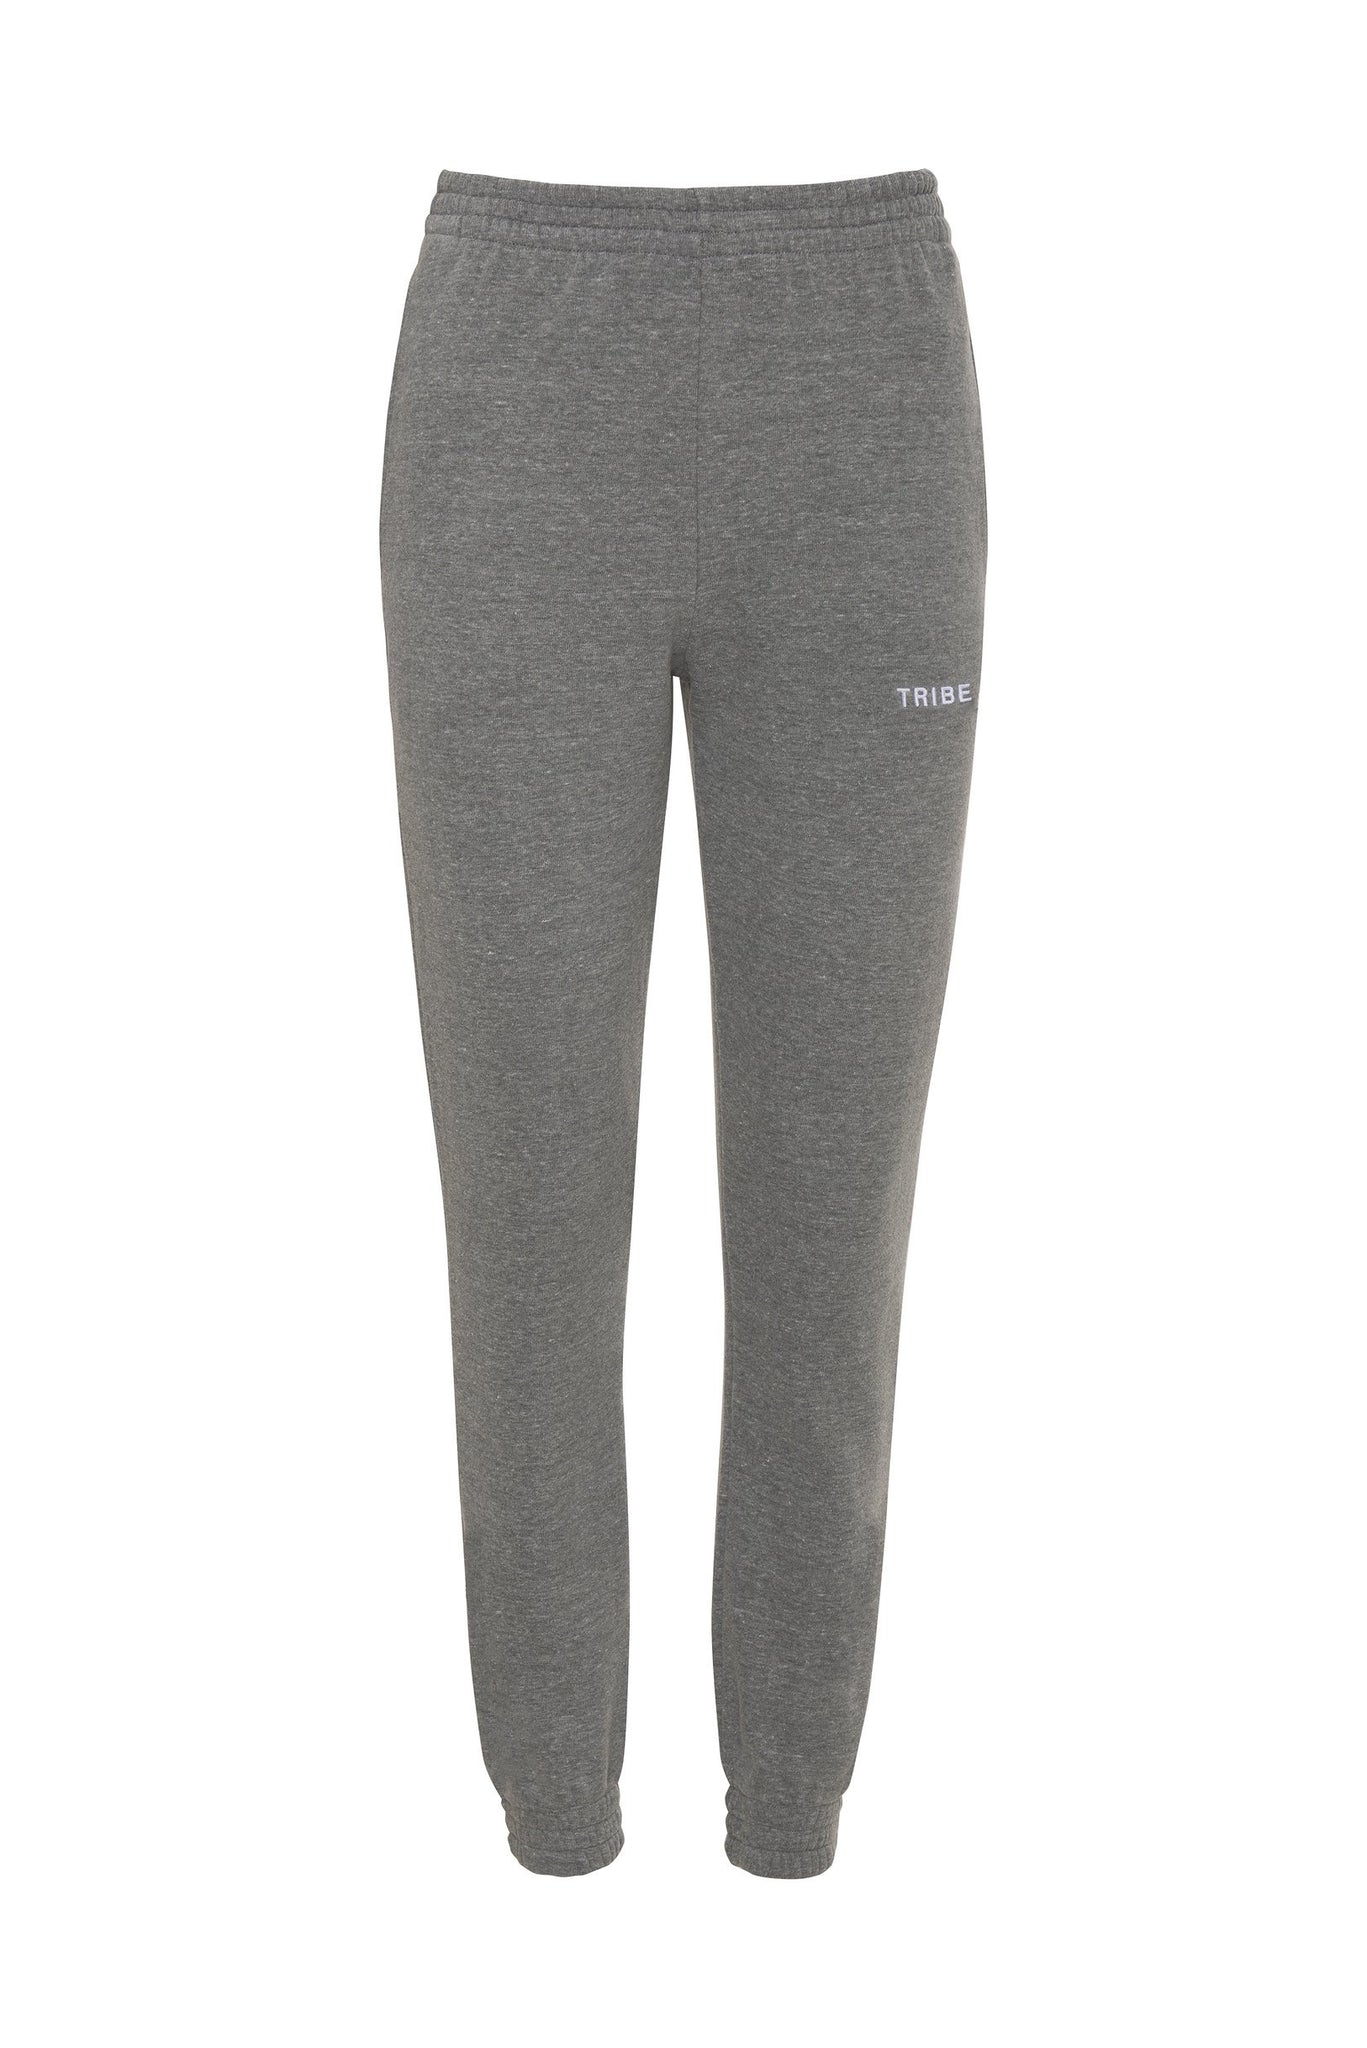 Butter Sweatpants - Women